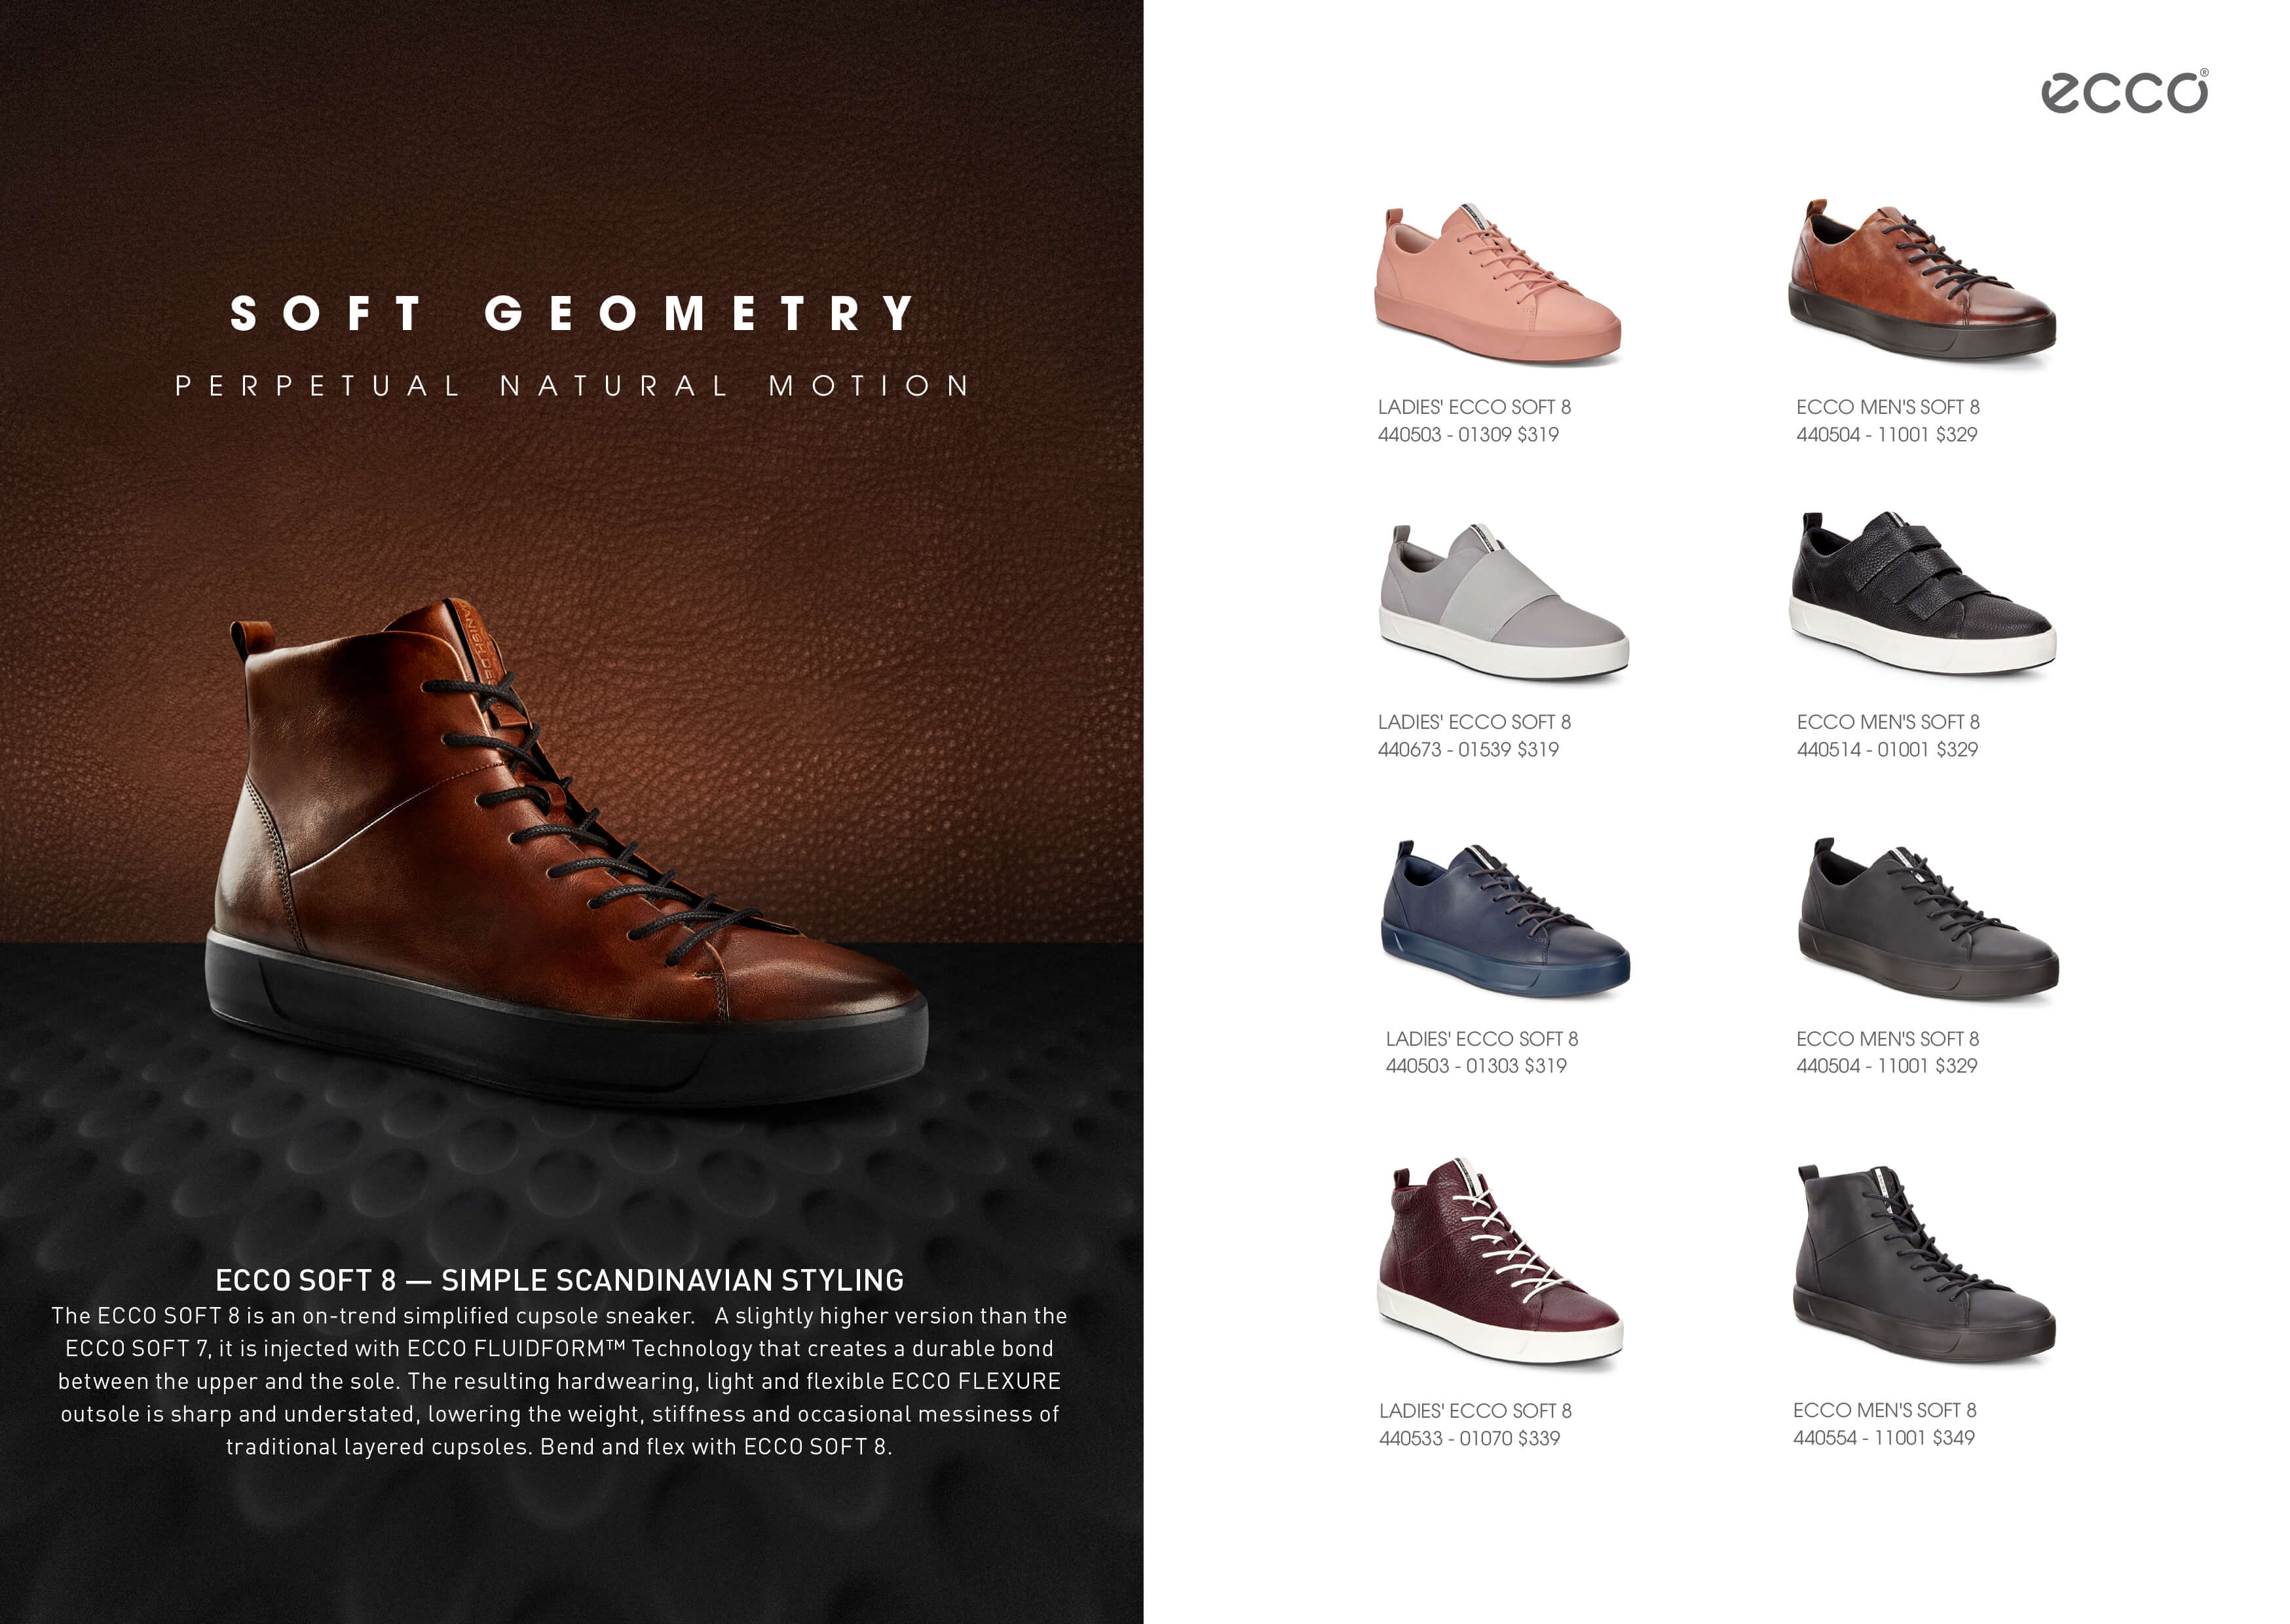 8ee35a387140 ECCO Shoes NZ Official Store